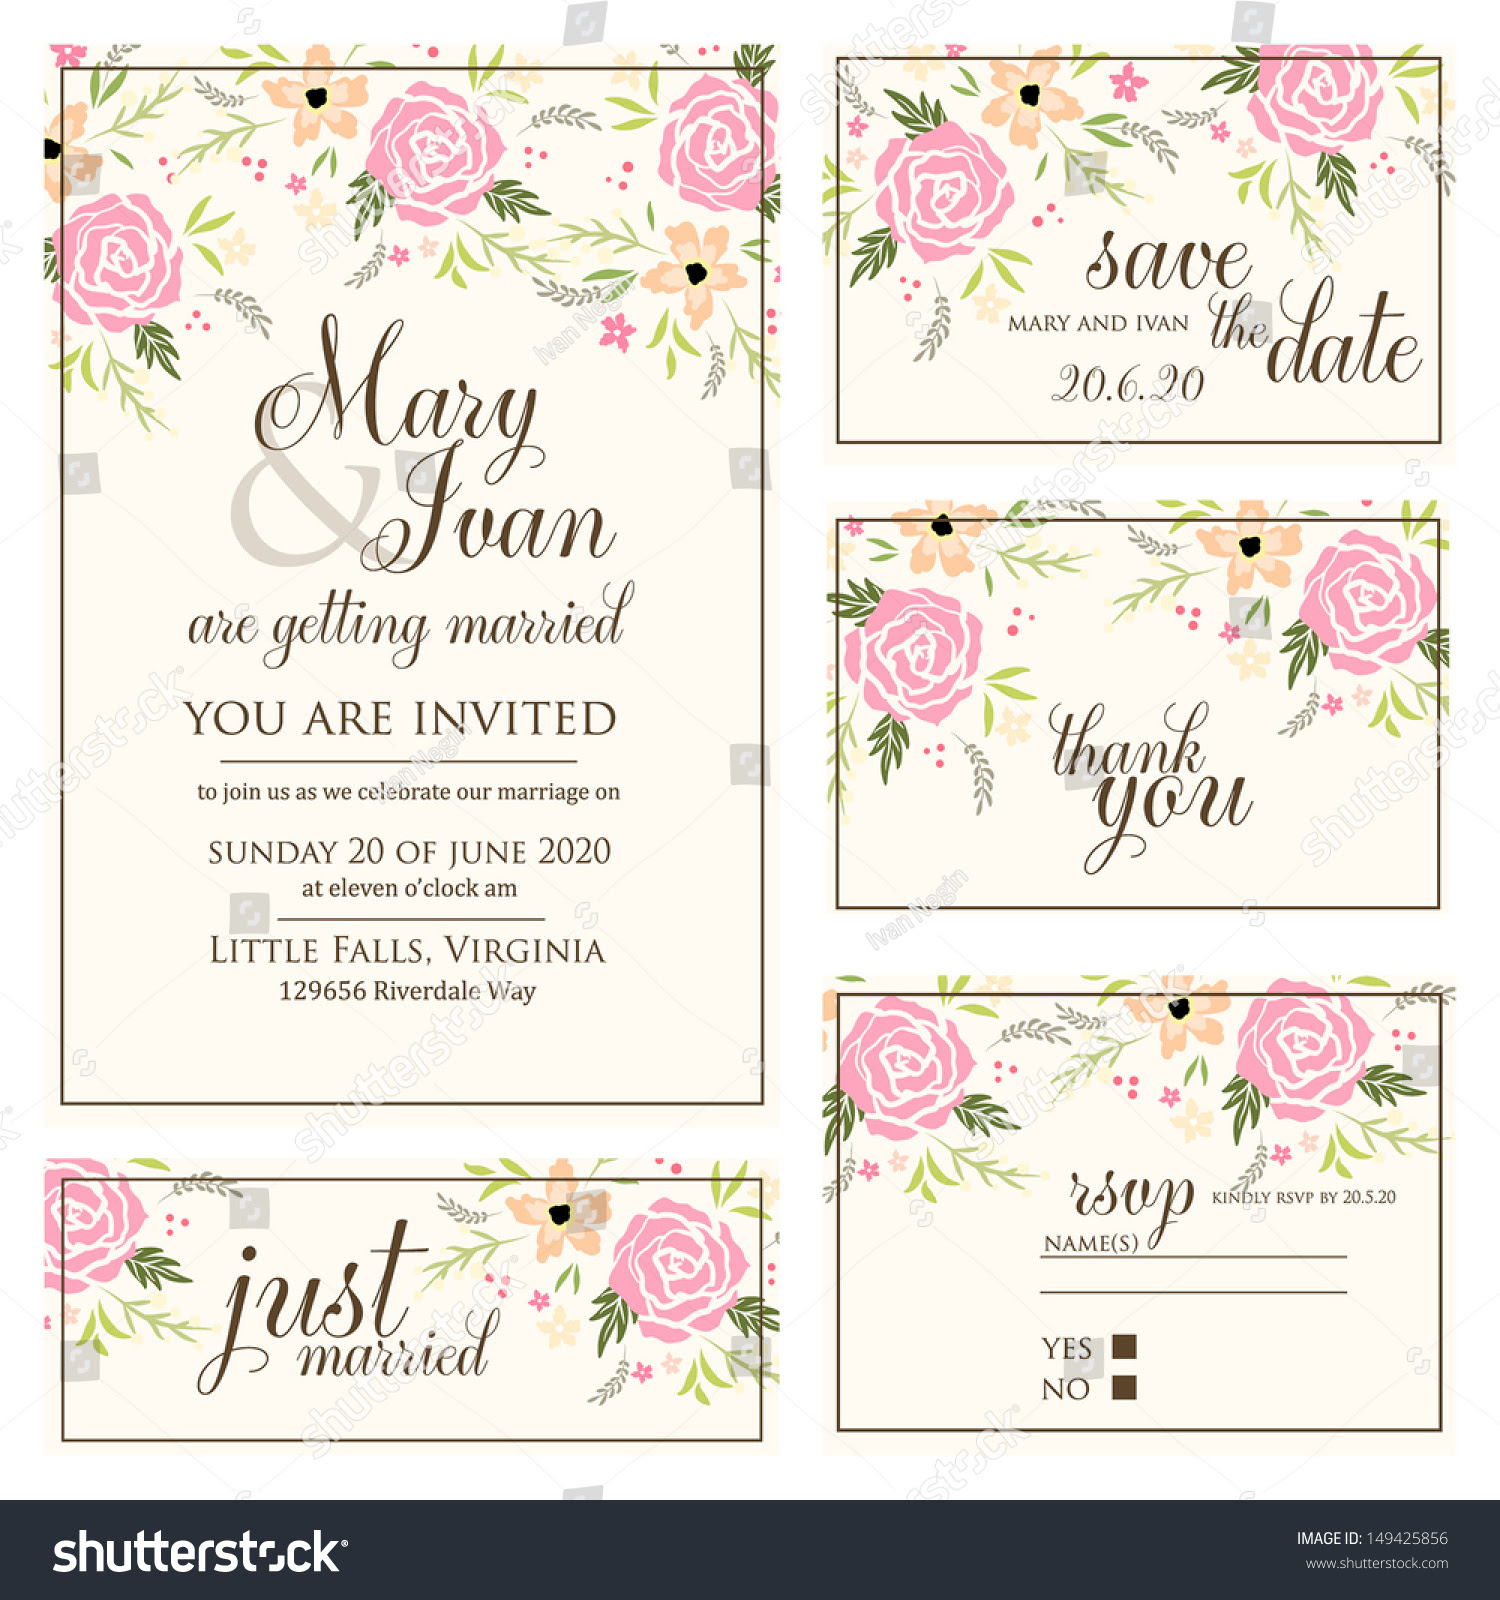 Different wedding Invitations Blog: Wedding invitations thank you cards